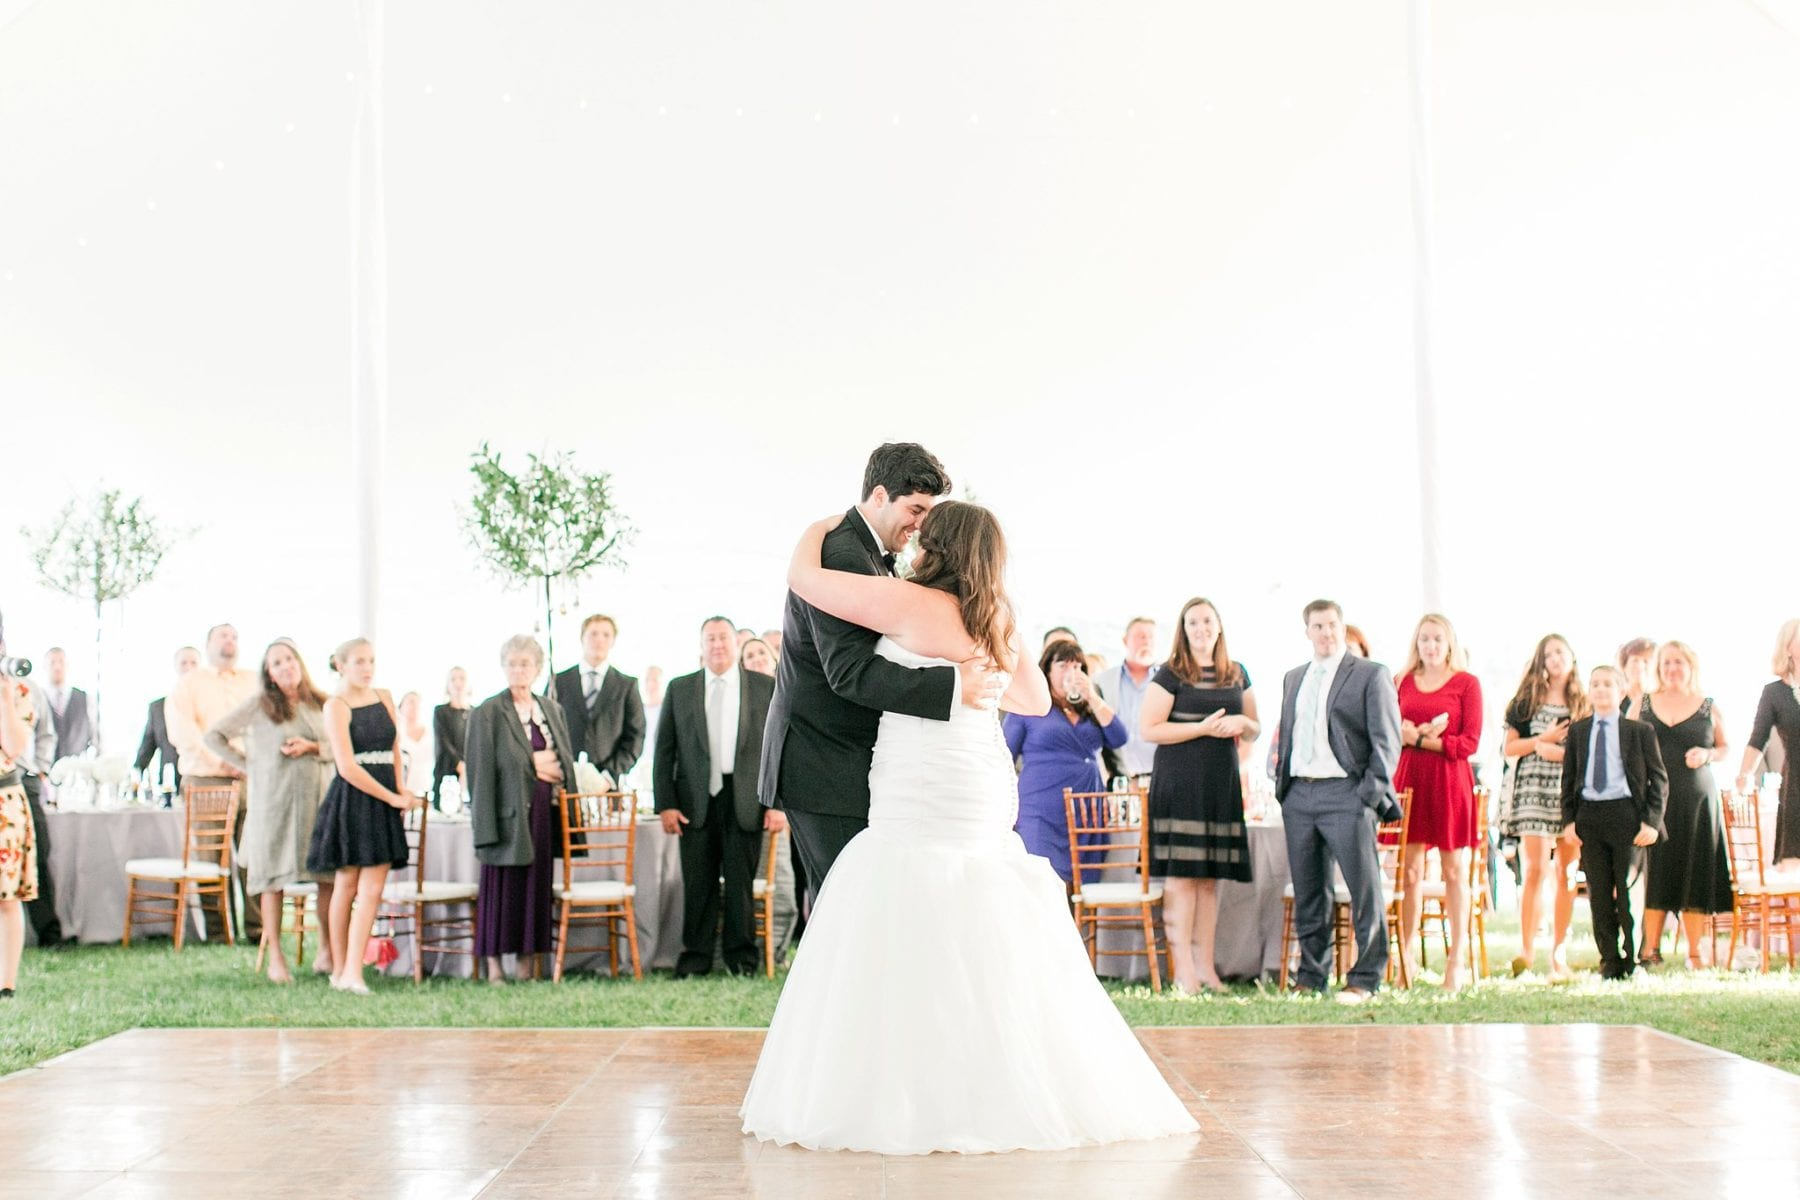 Chesapeake Bay Maritime Museum Wedding Photos Maryland Wedding Photographer Megan Kelsey Photography Halie & Mike-166.jpg